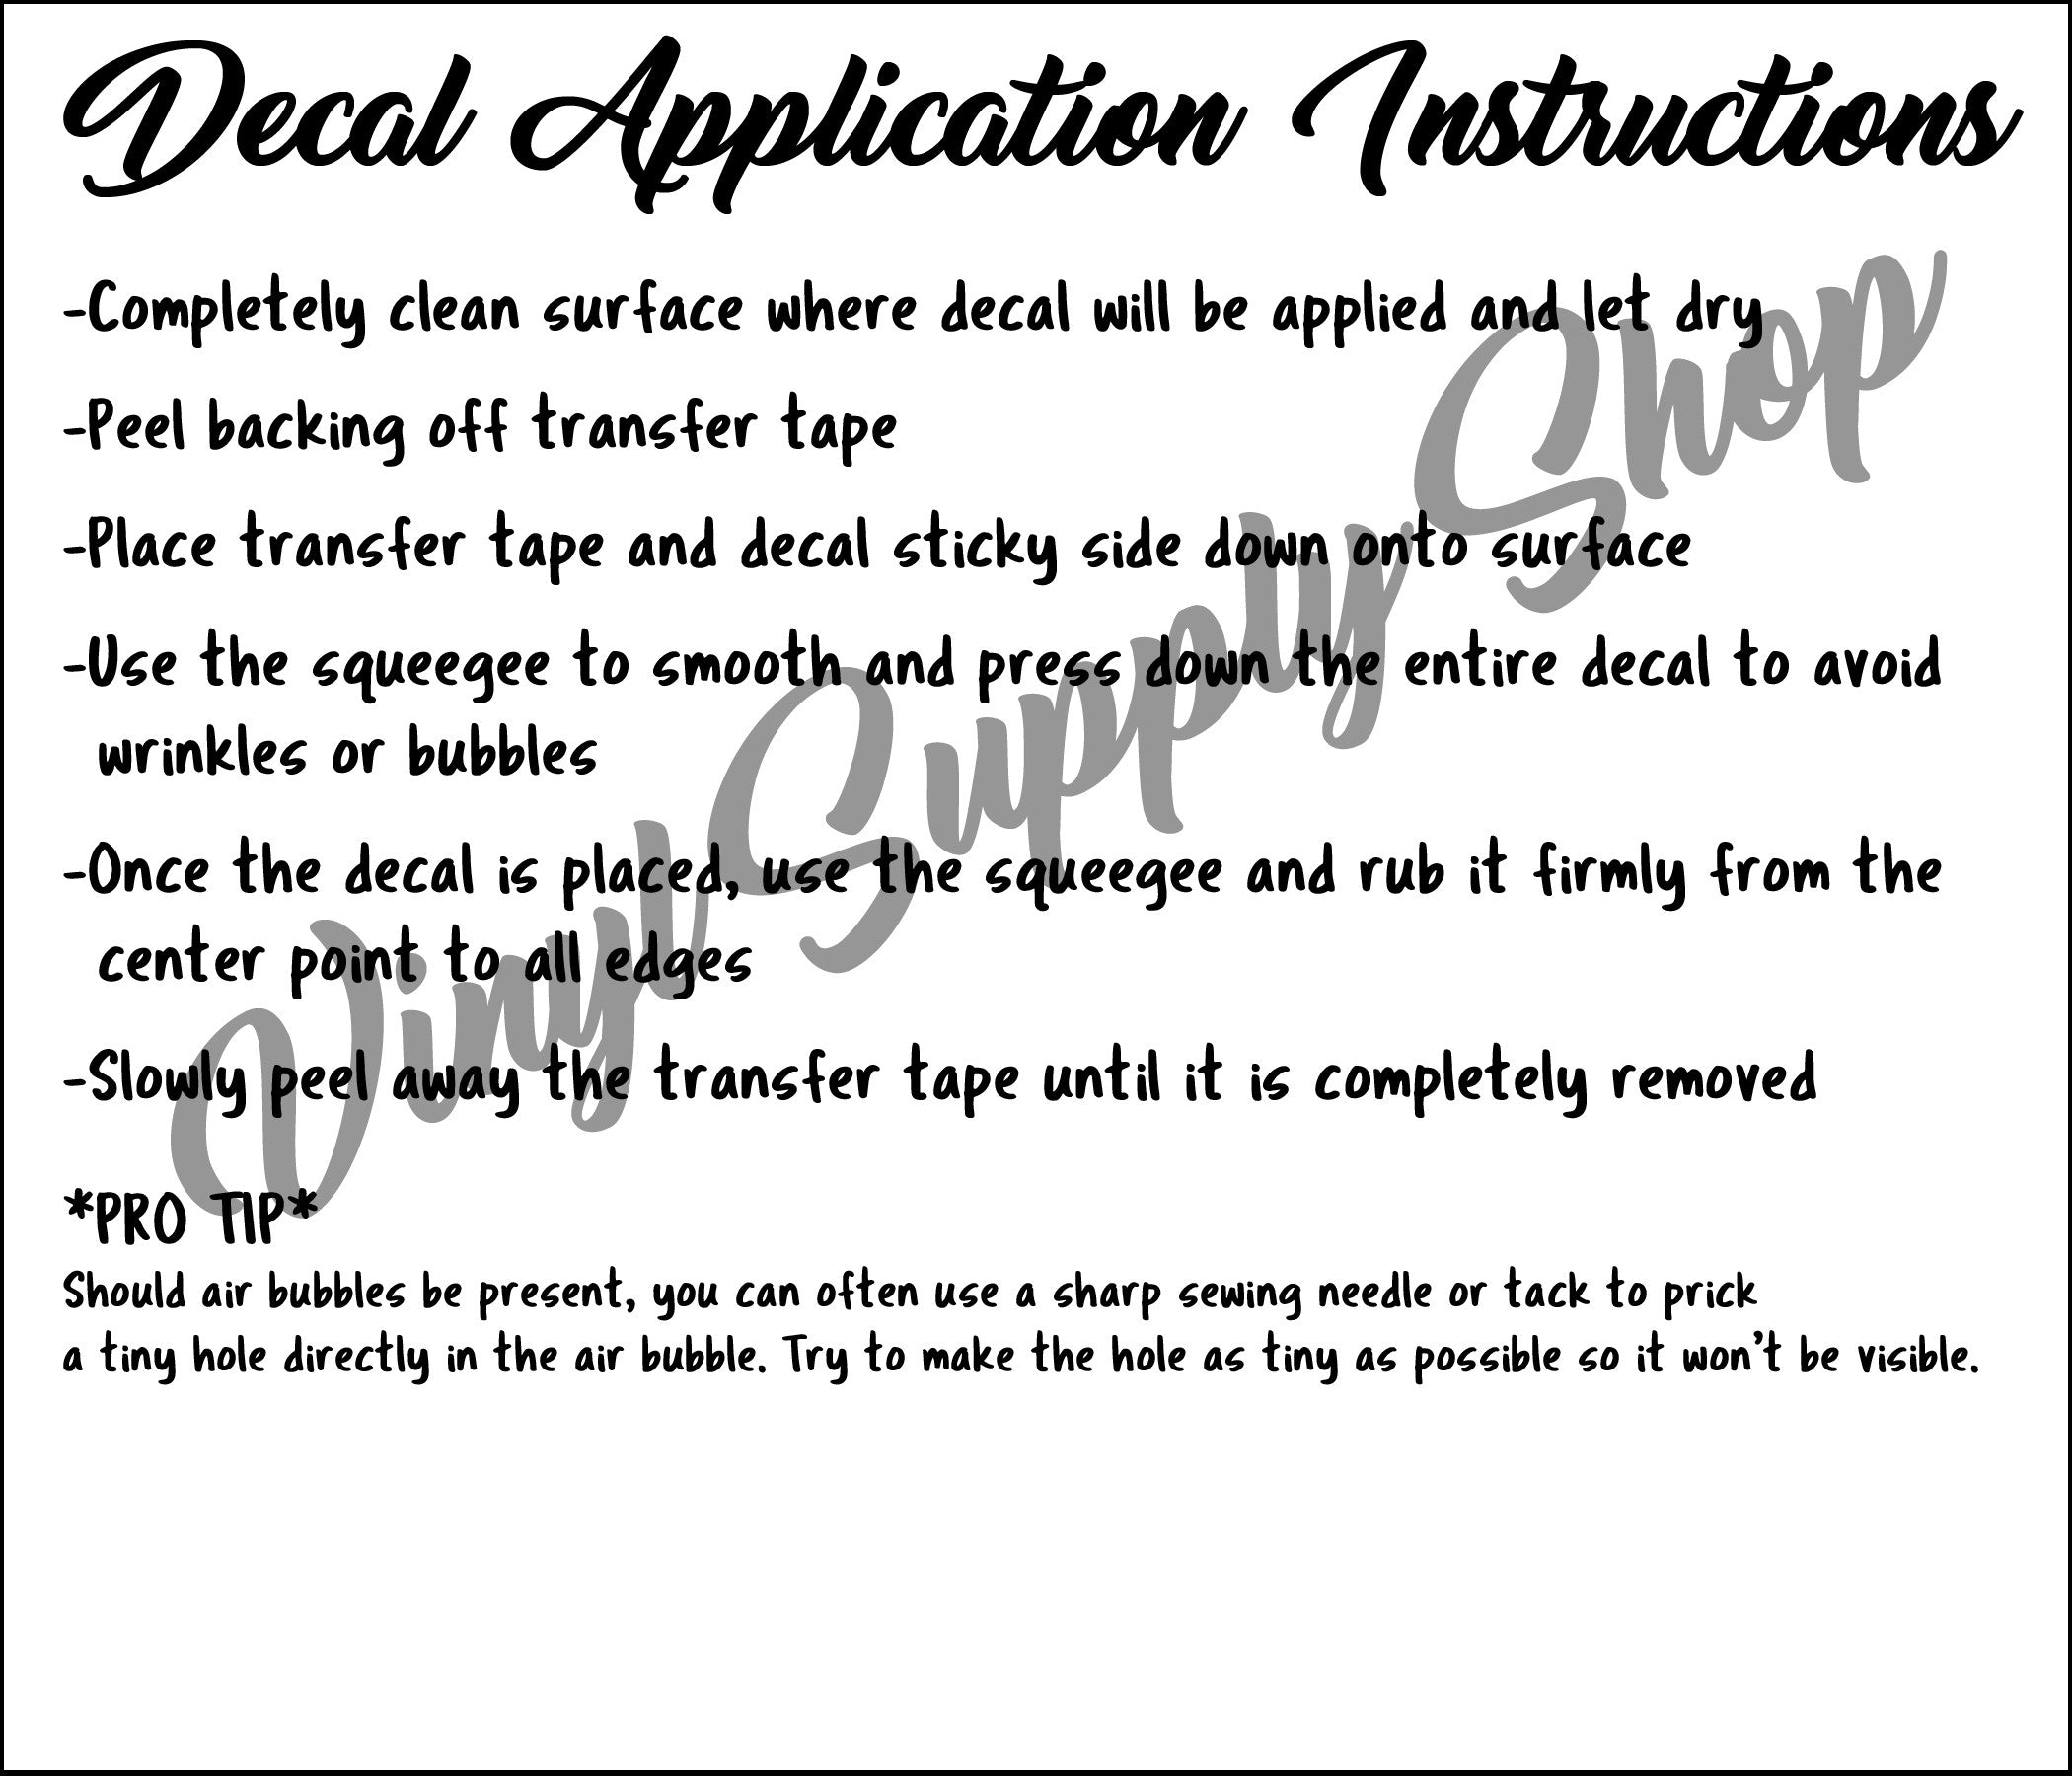 picture relating to Decal Application Instructions Printable named Insert Your Company Track record Decal Software program Recommendations Simple